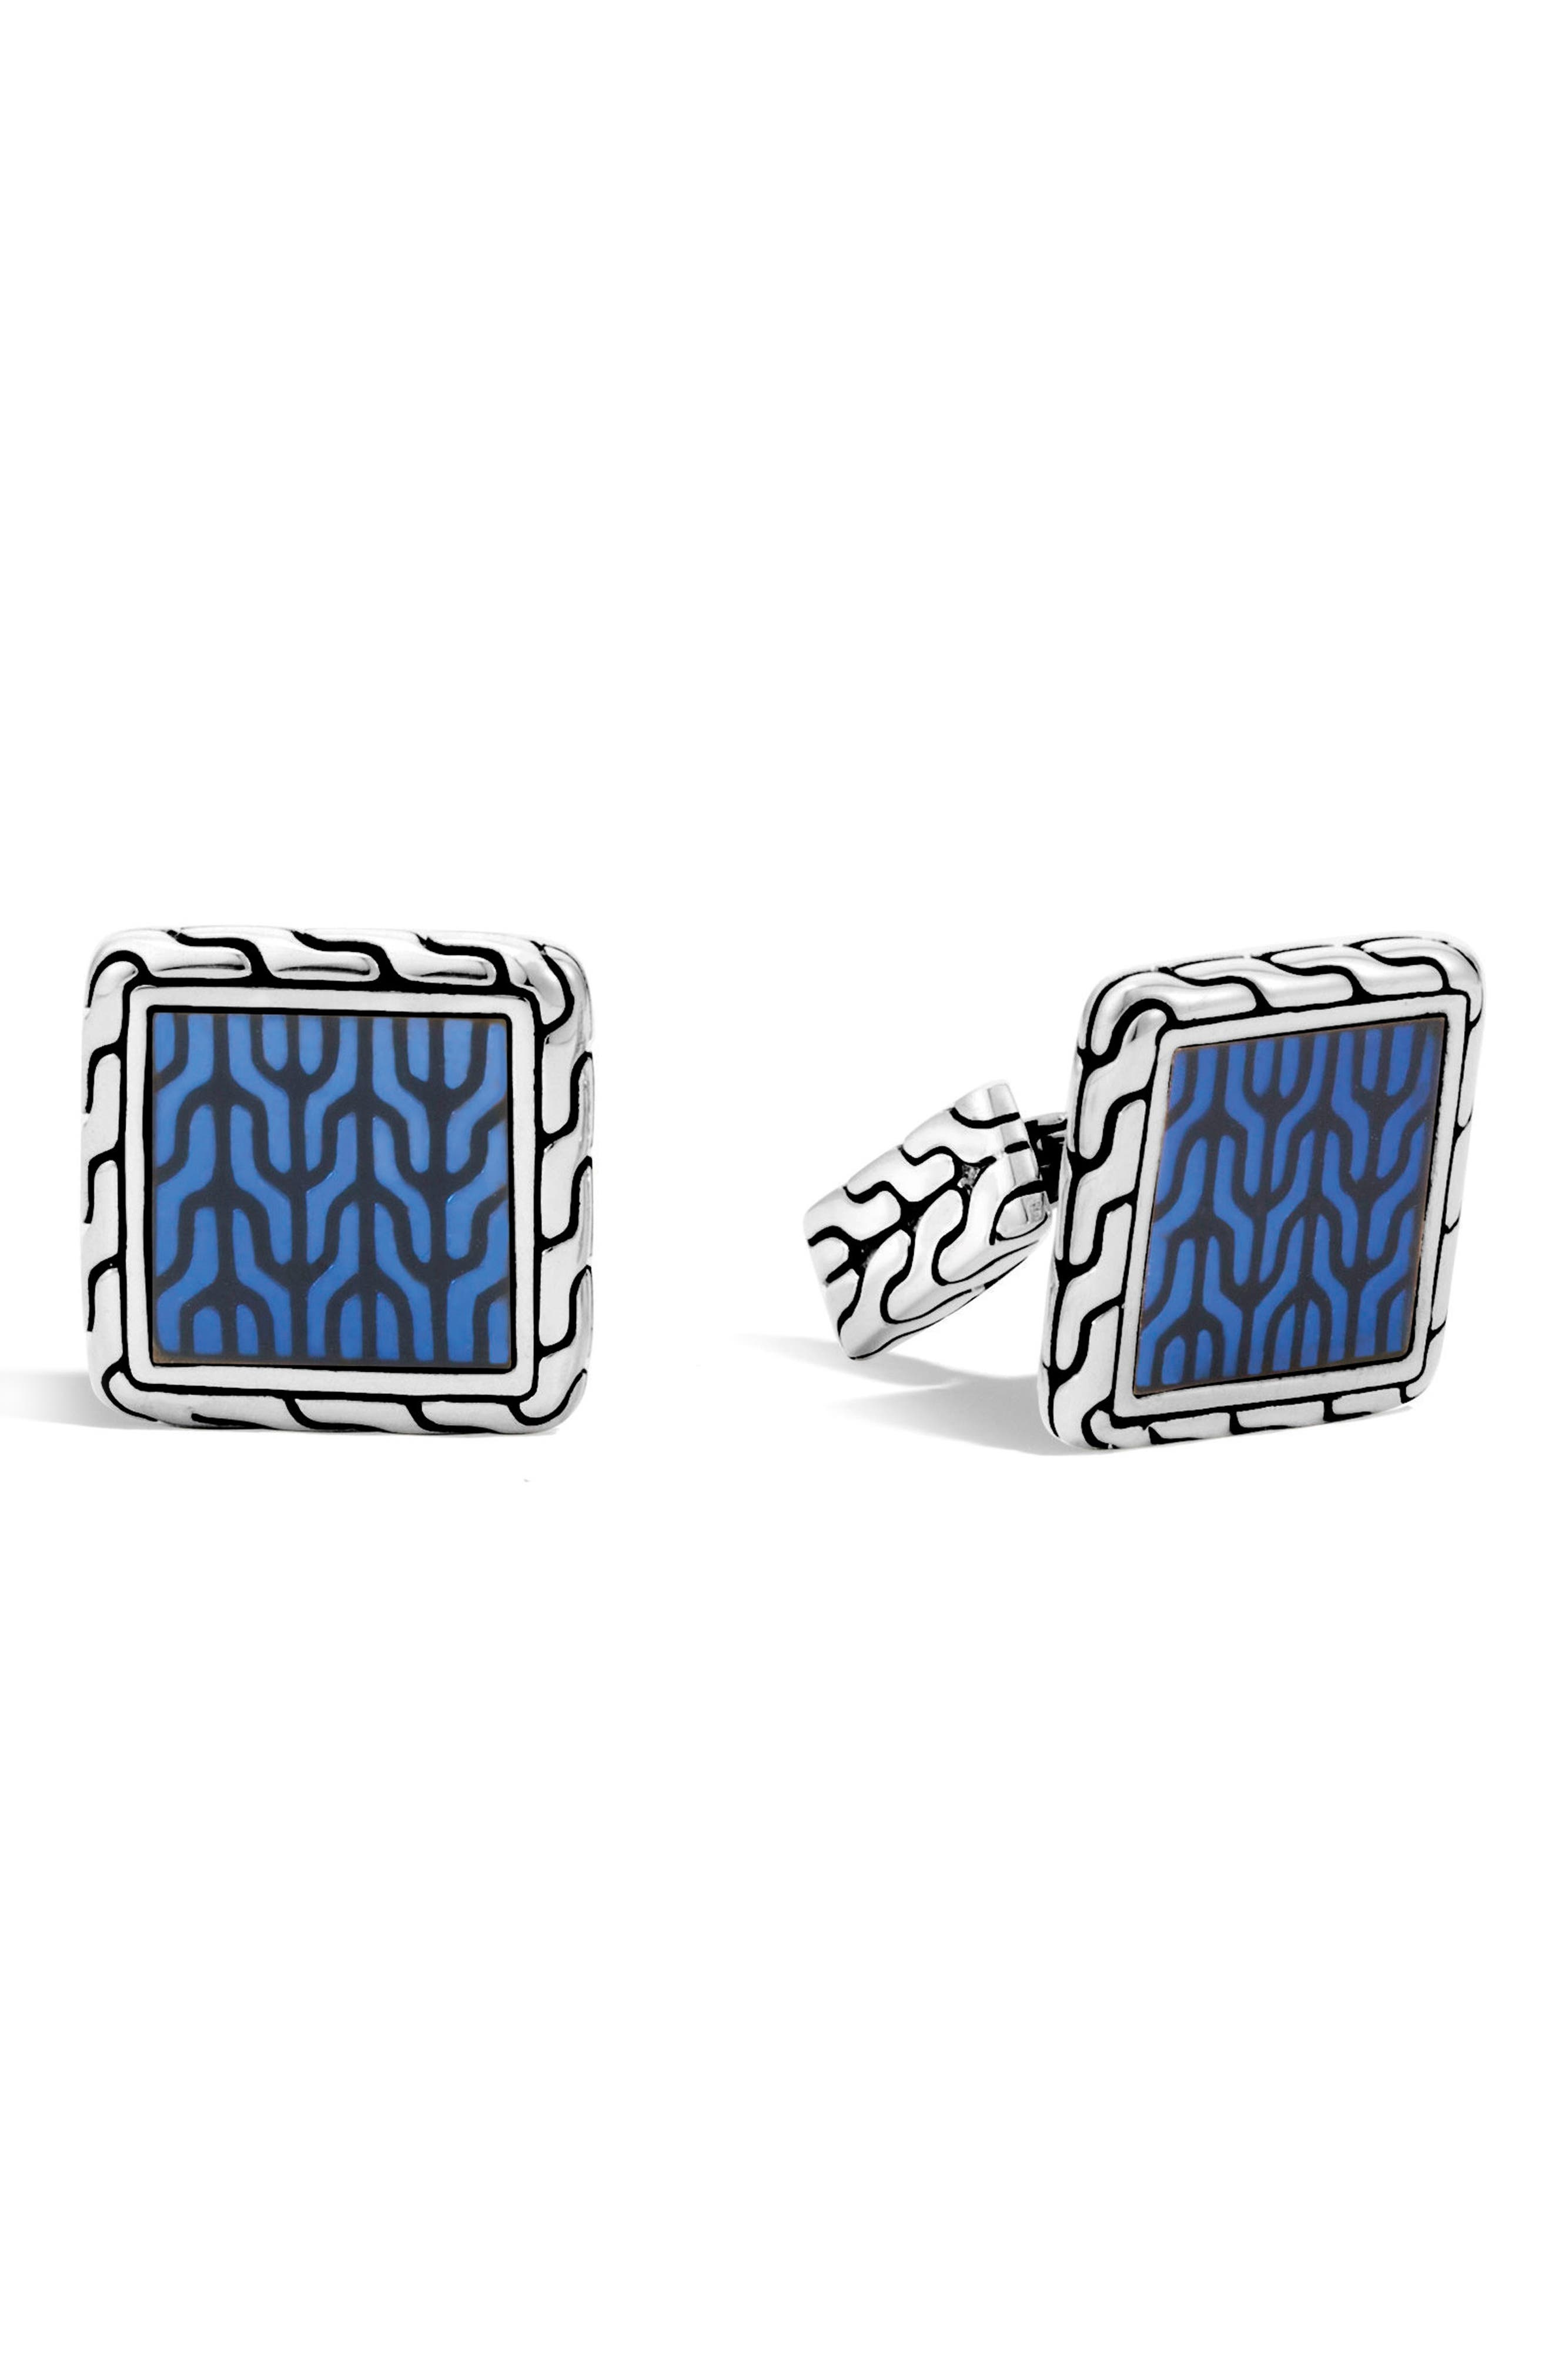 Alternate Image 1 Selected - John Hardy Classic Chain Silver Enamel Square Cuff Links